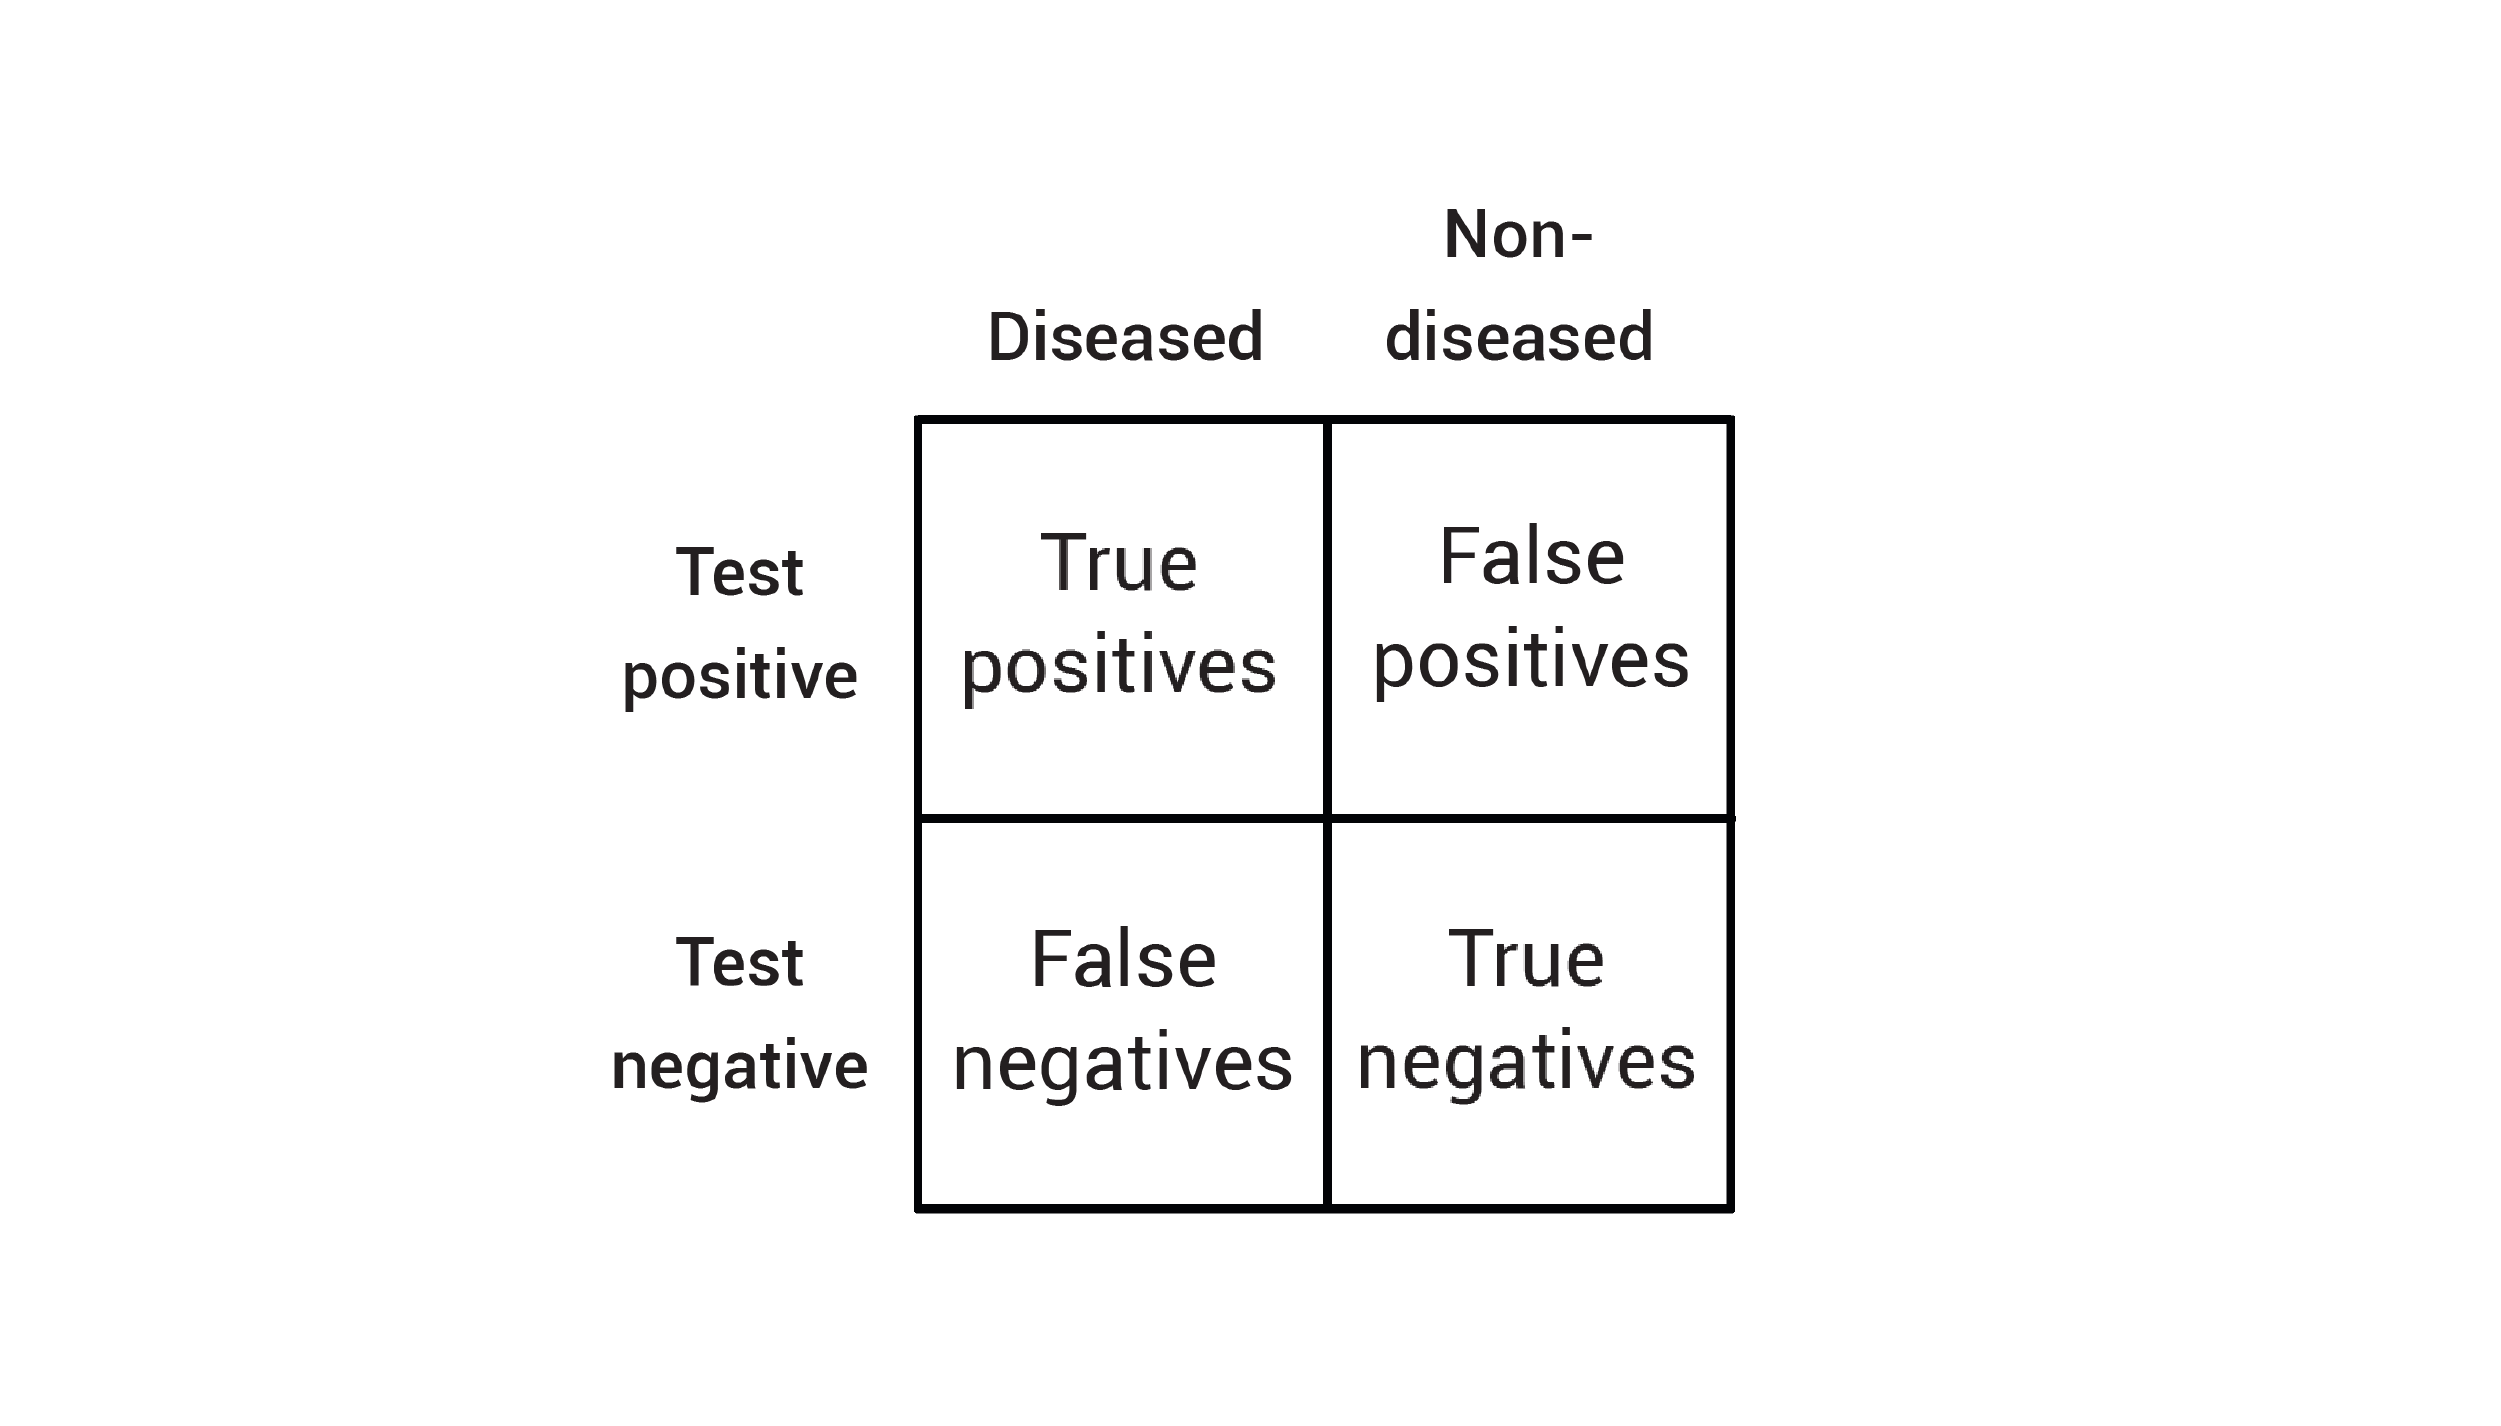 The relationship between disease status and diagnostic test results. Illustration.